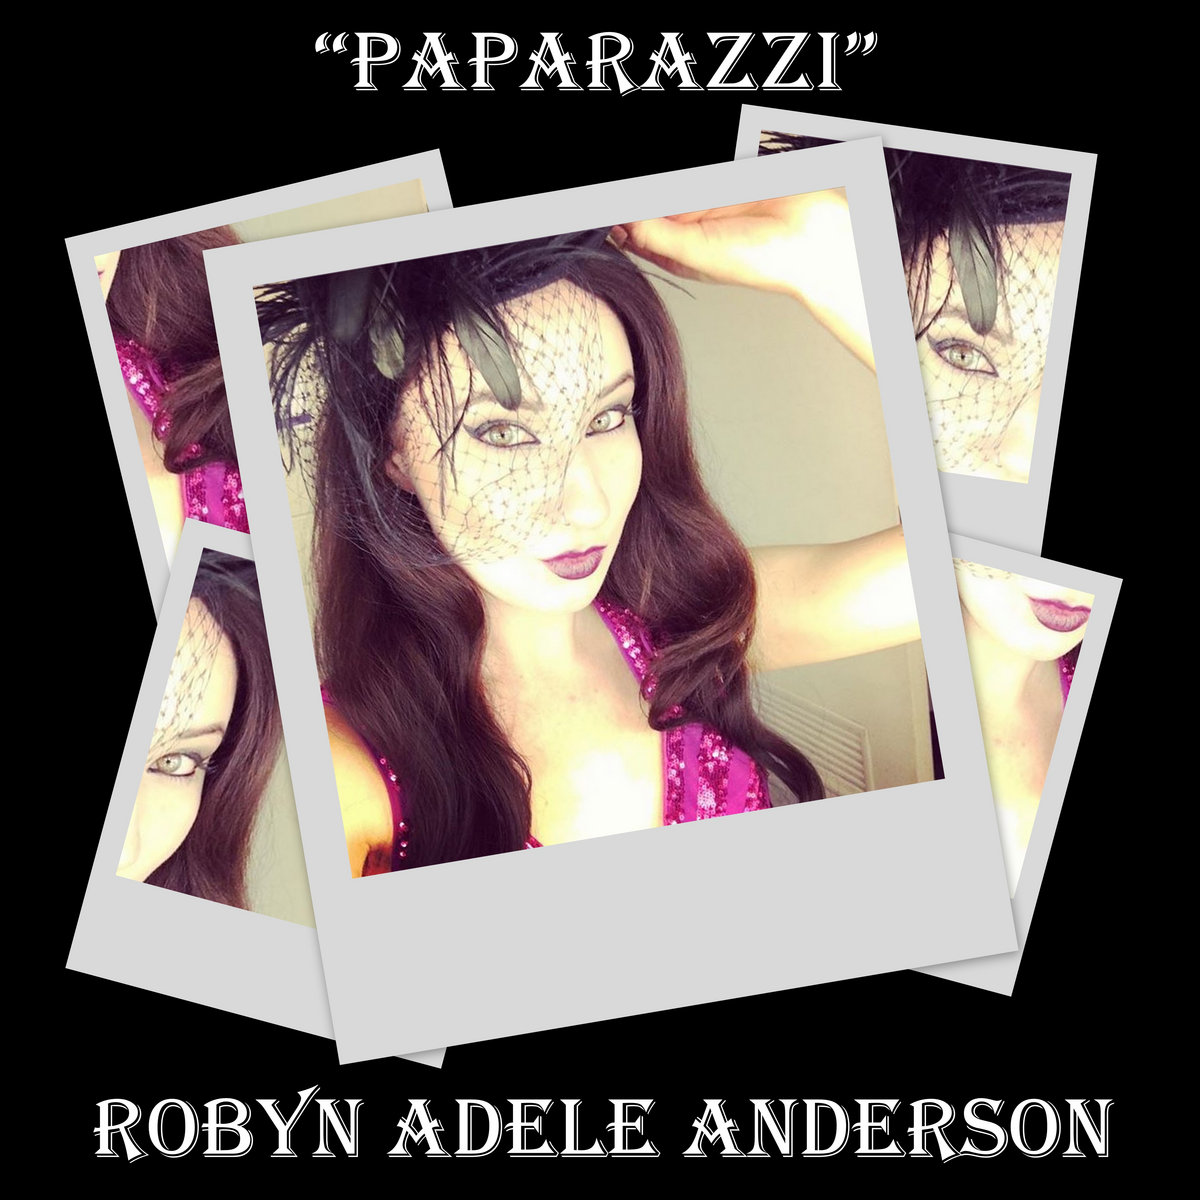 Paparazzi (Lady Gaga Cover) | Robyn Adele Anderson